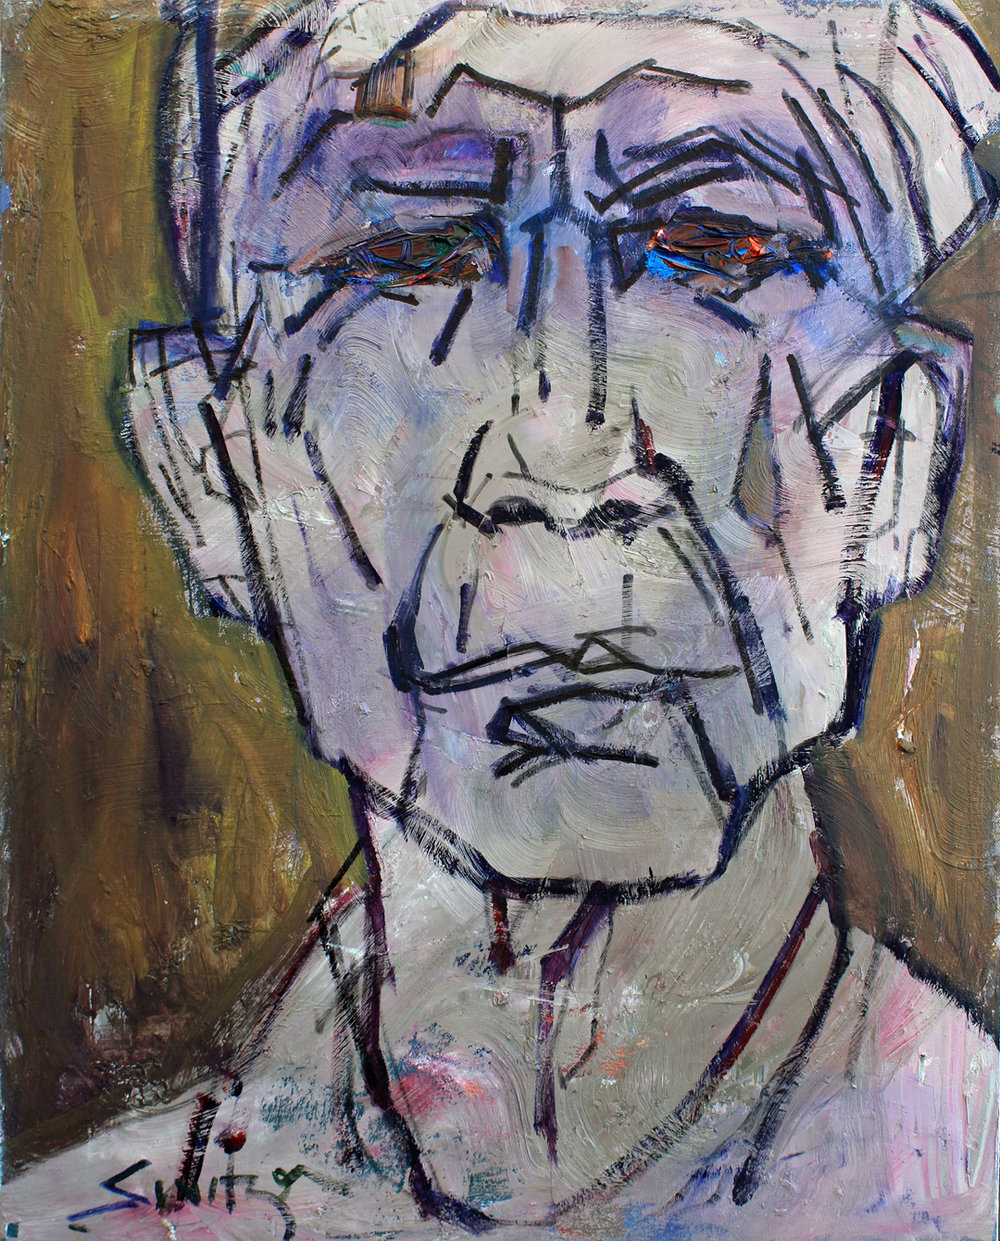 """Old Man"", 30x24 inches, oil on canvas"